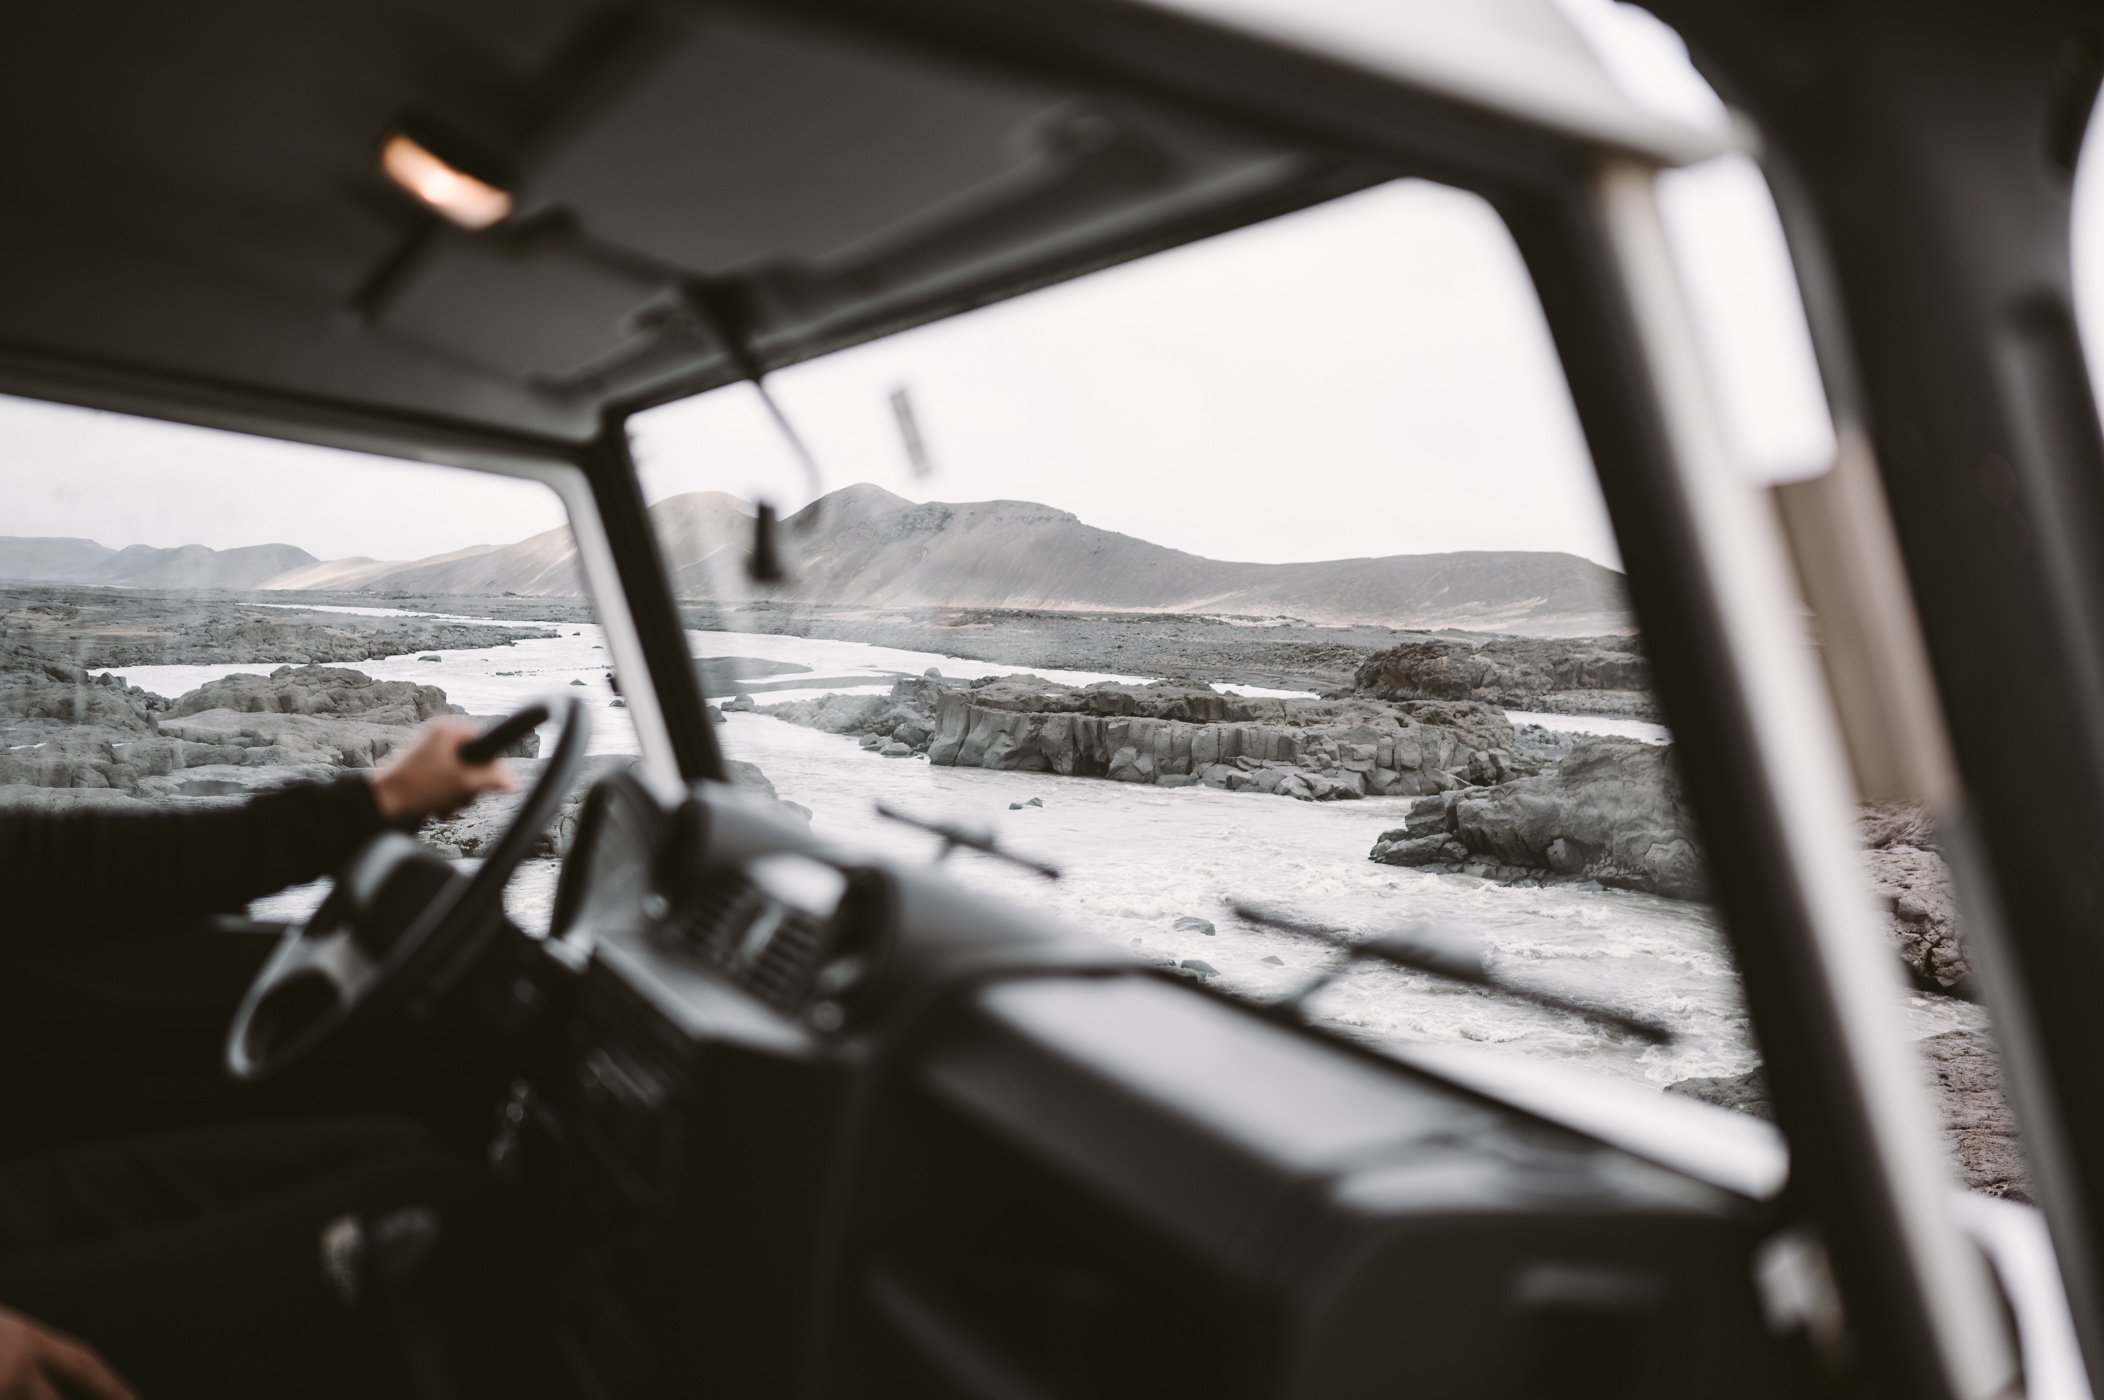 Interior of Landrover Defender